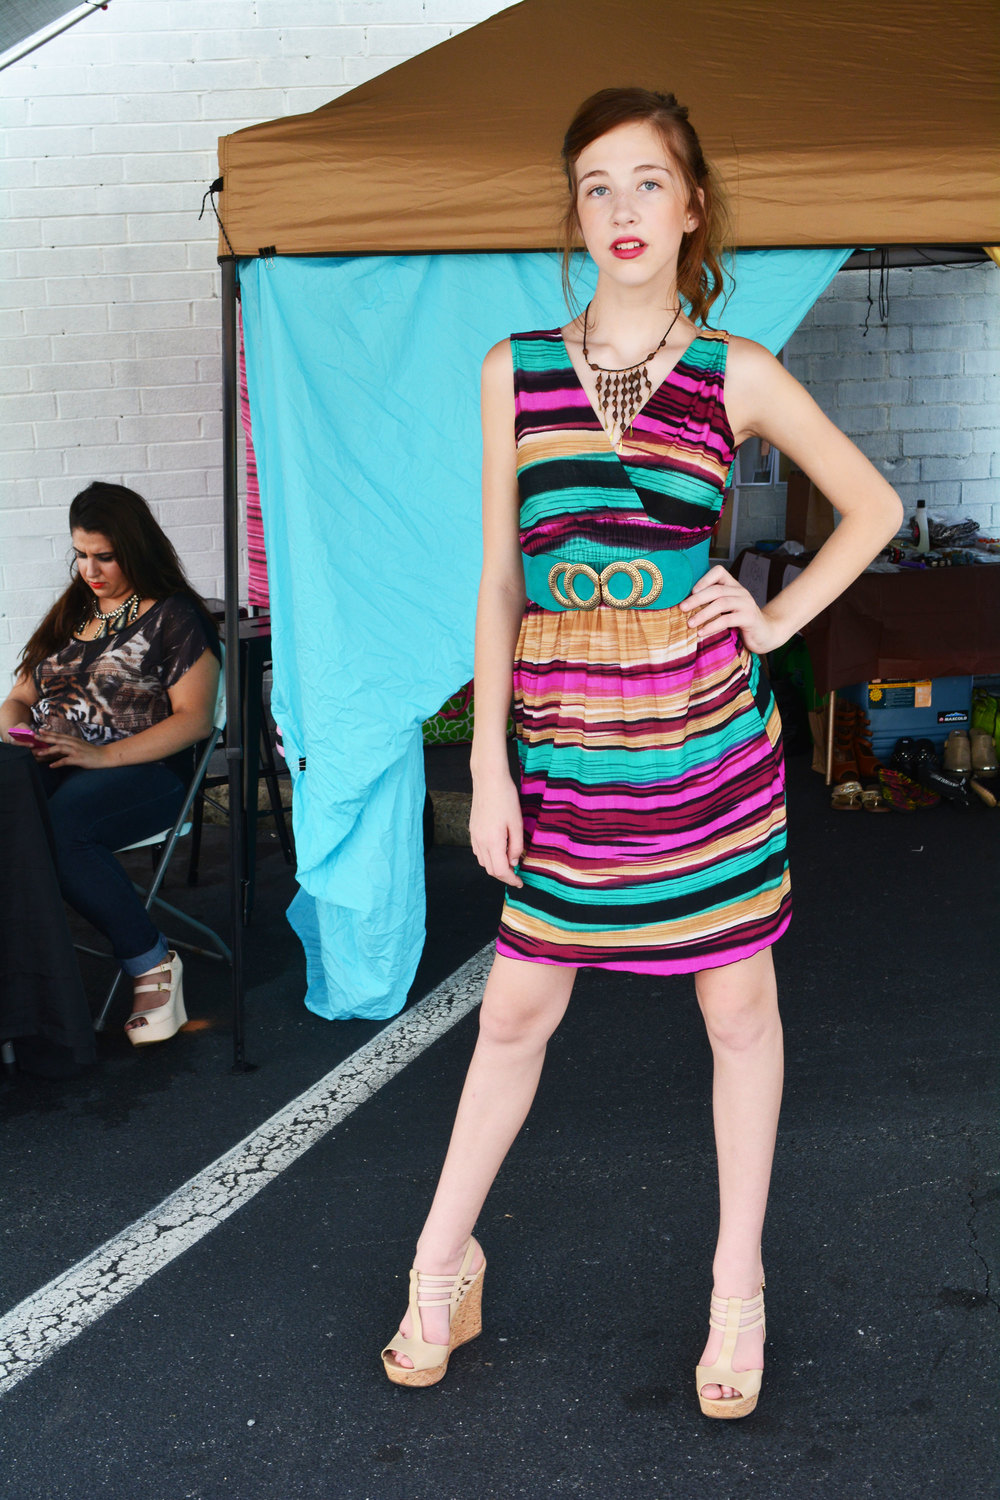 Maelyn-Behind-the-Scenes-Accessories-Access-WEB.jpg